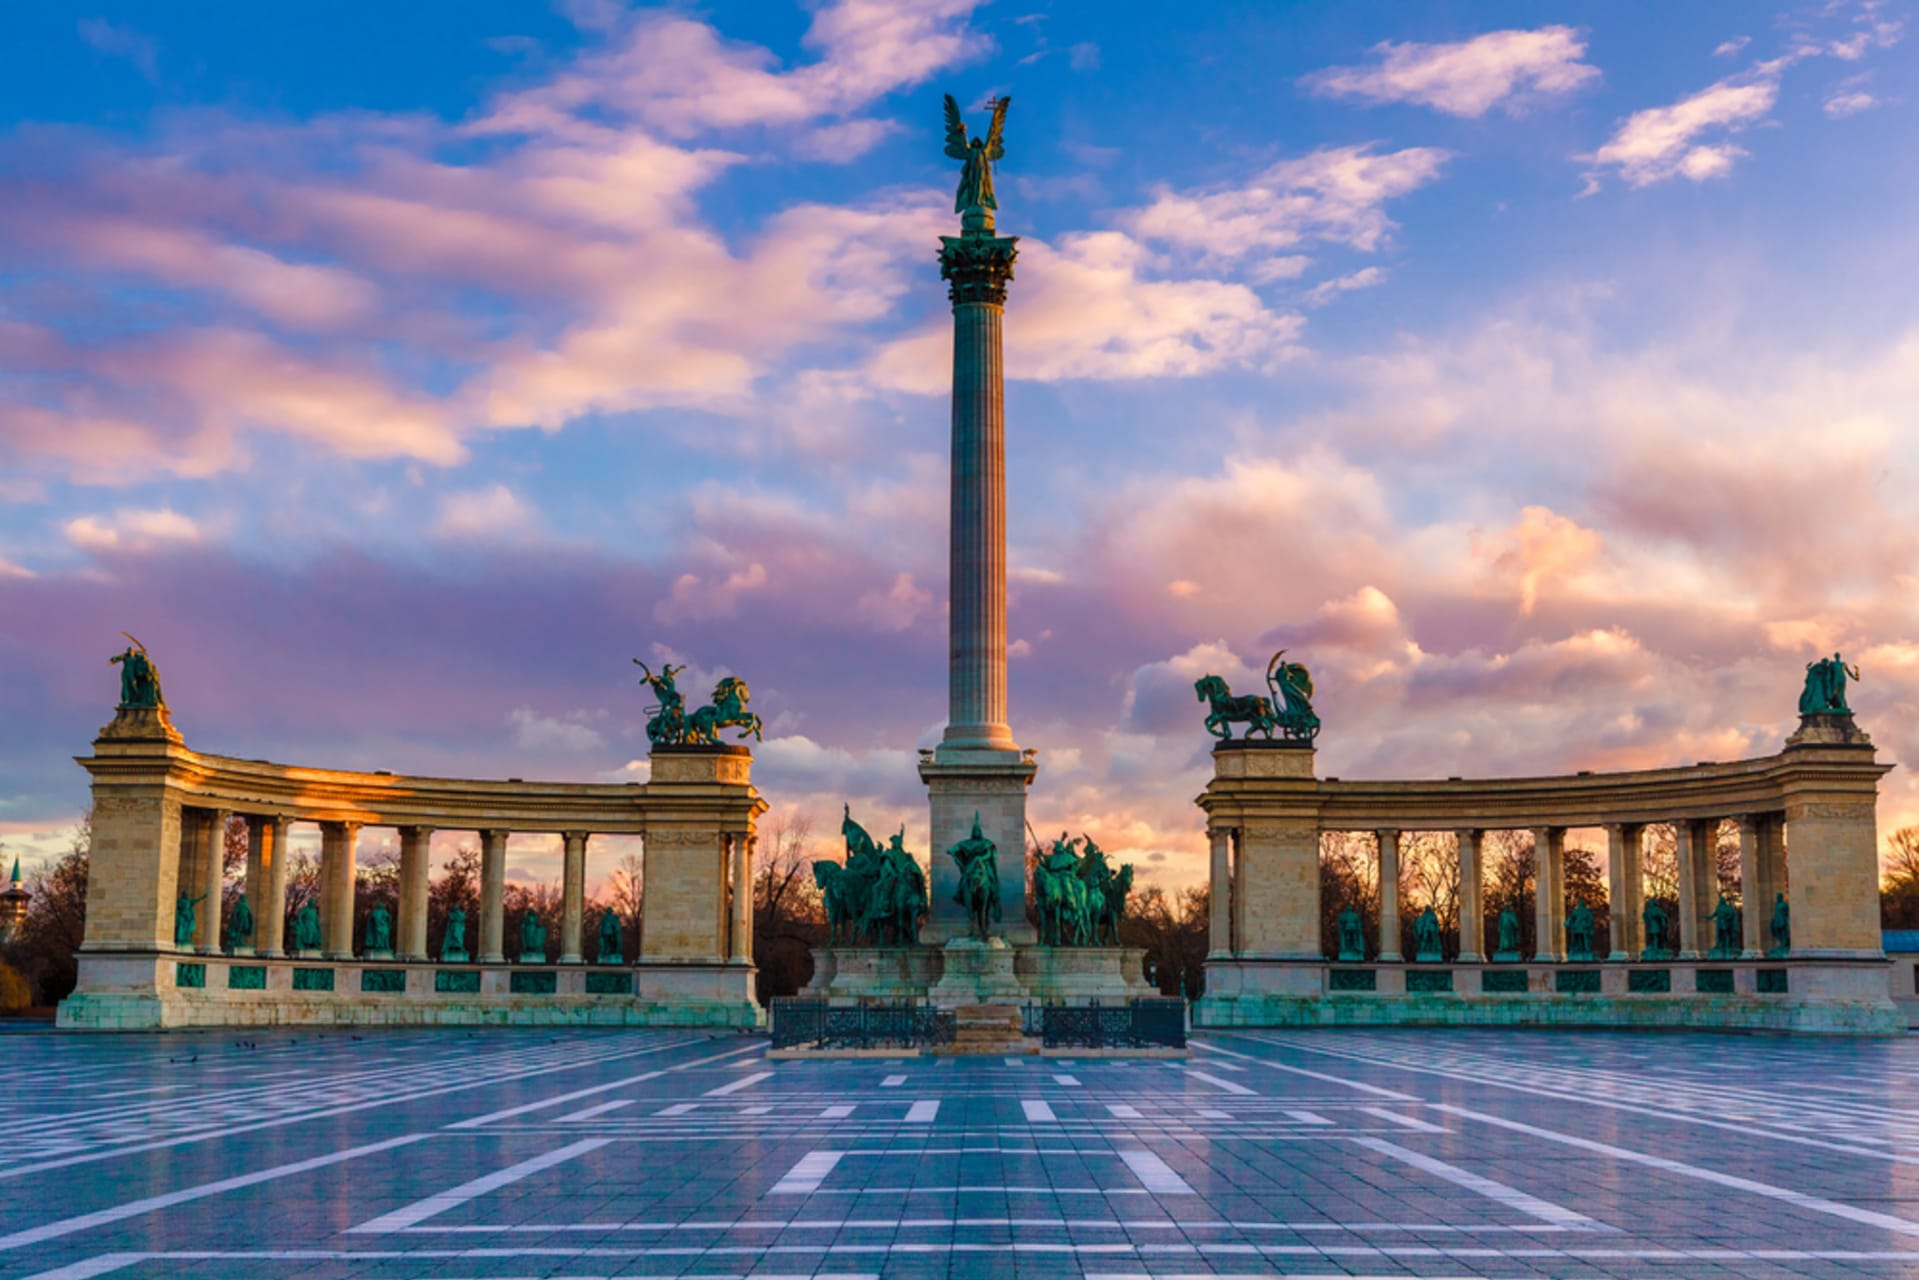 Budapest - Heroes' Square and the Vajdahunyad Castle